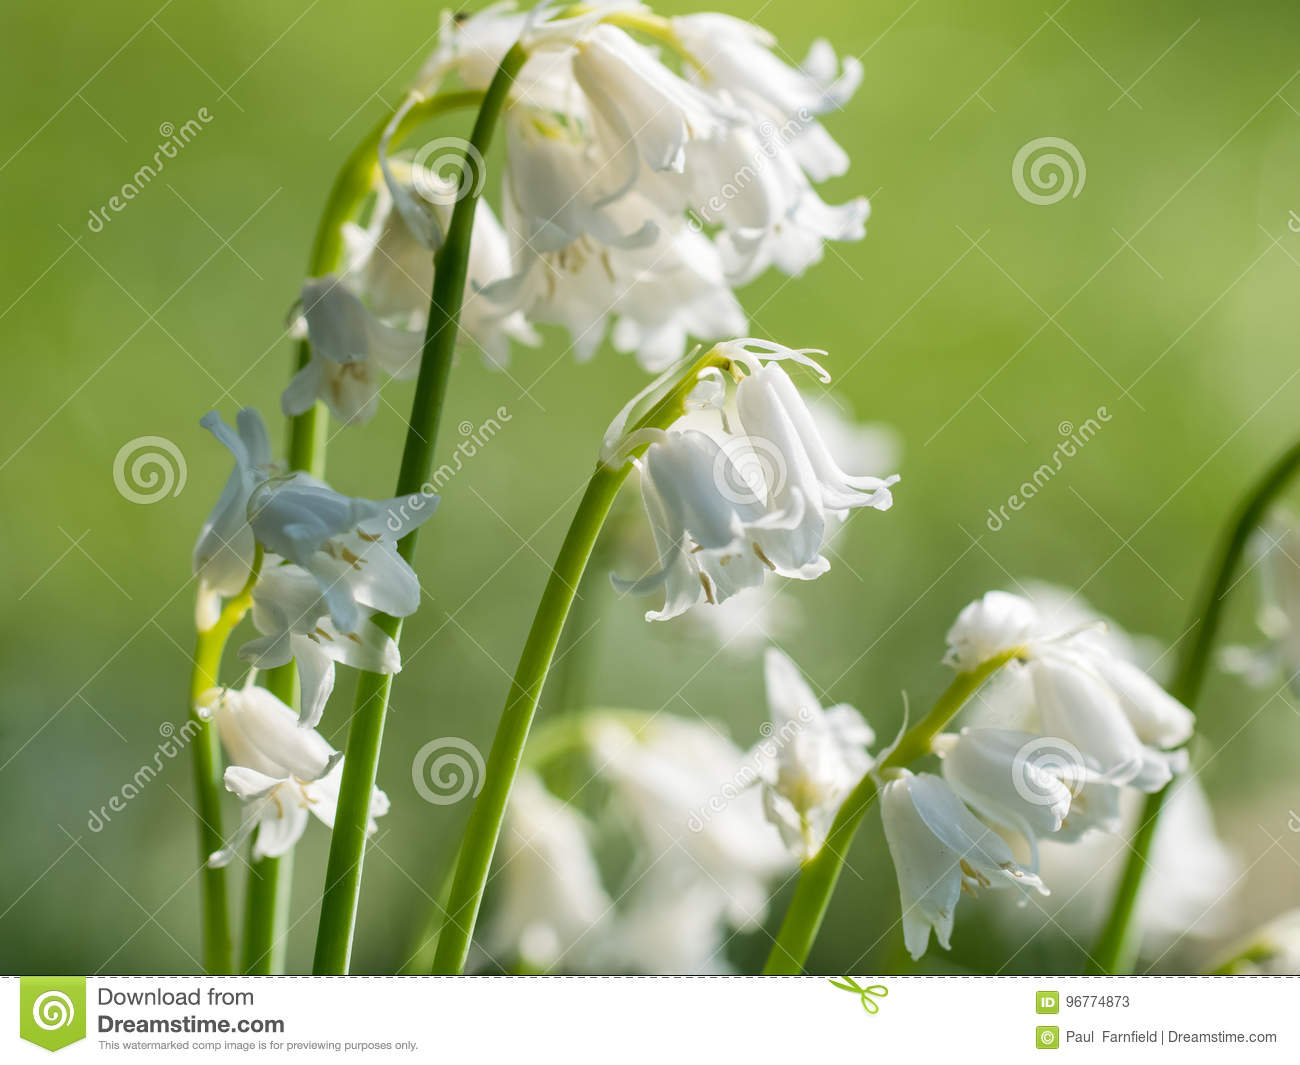 Bunch of white bluebell bluebells flowers stock image image of download bunch of white bluebell bluebells flowers stock image image of perennial closeup mightylinksfo